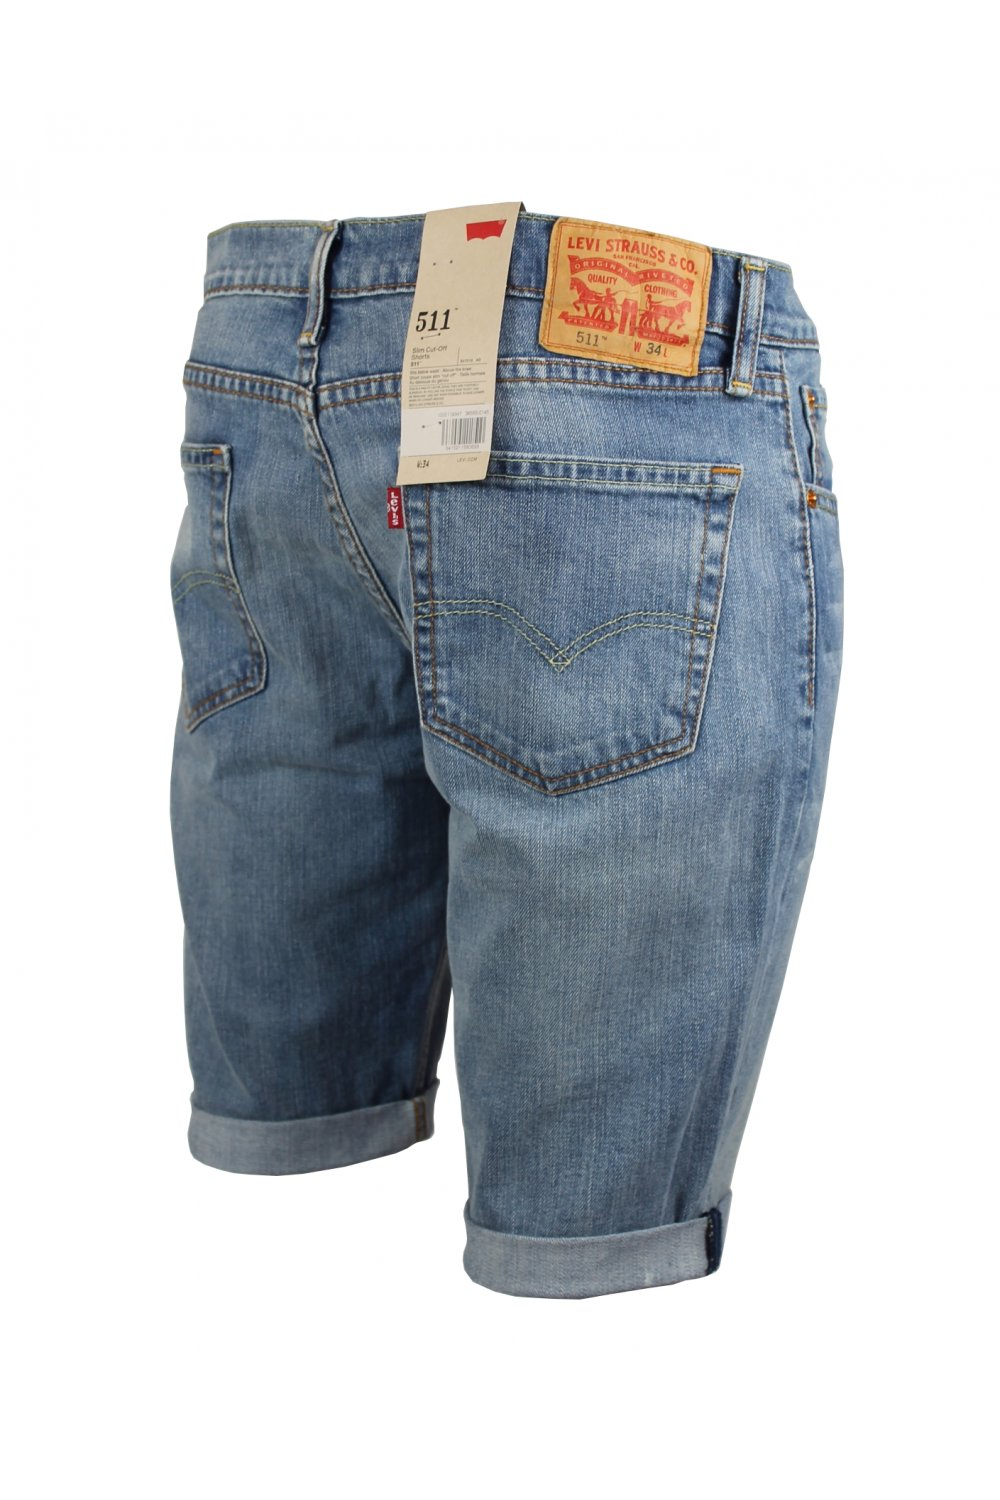 0ec336ee Levi's 511 Slim Cut Off Shorts (Yurt) - Jeans from ThirtySix UK